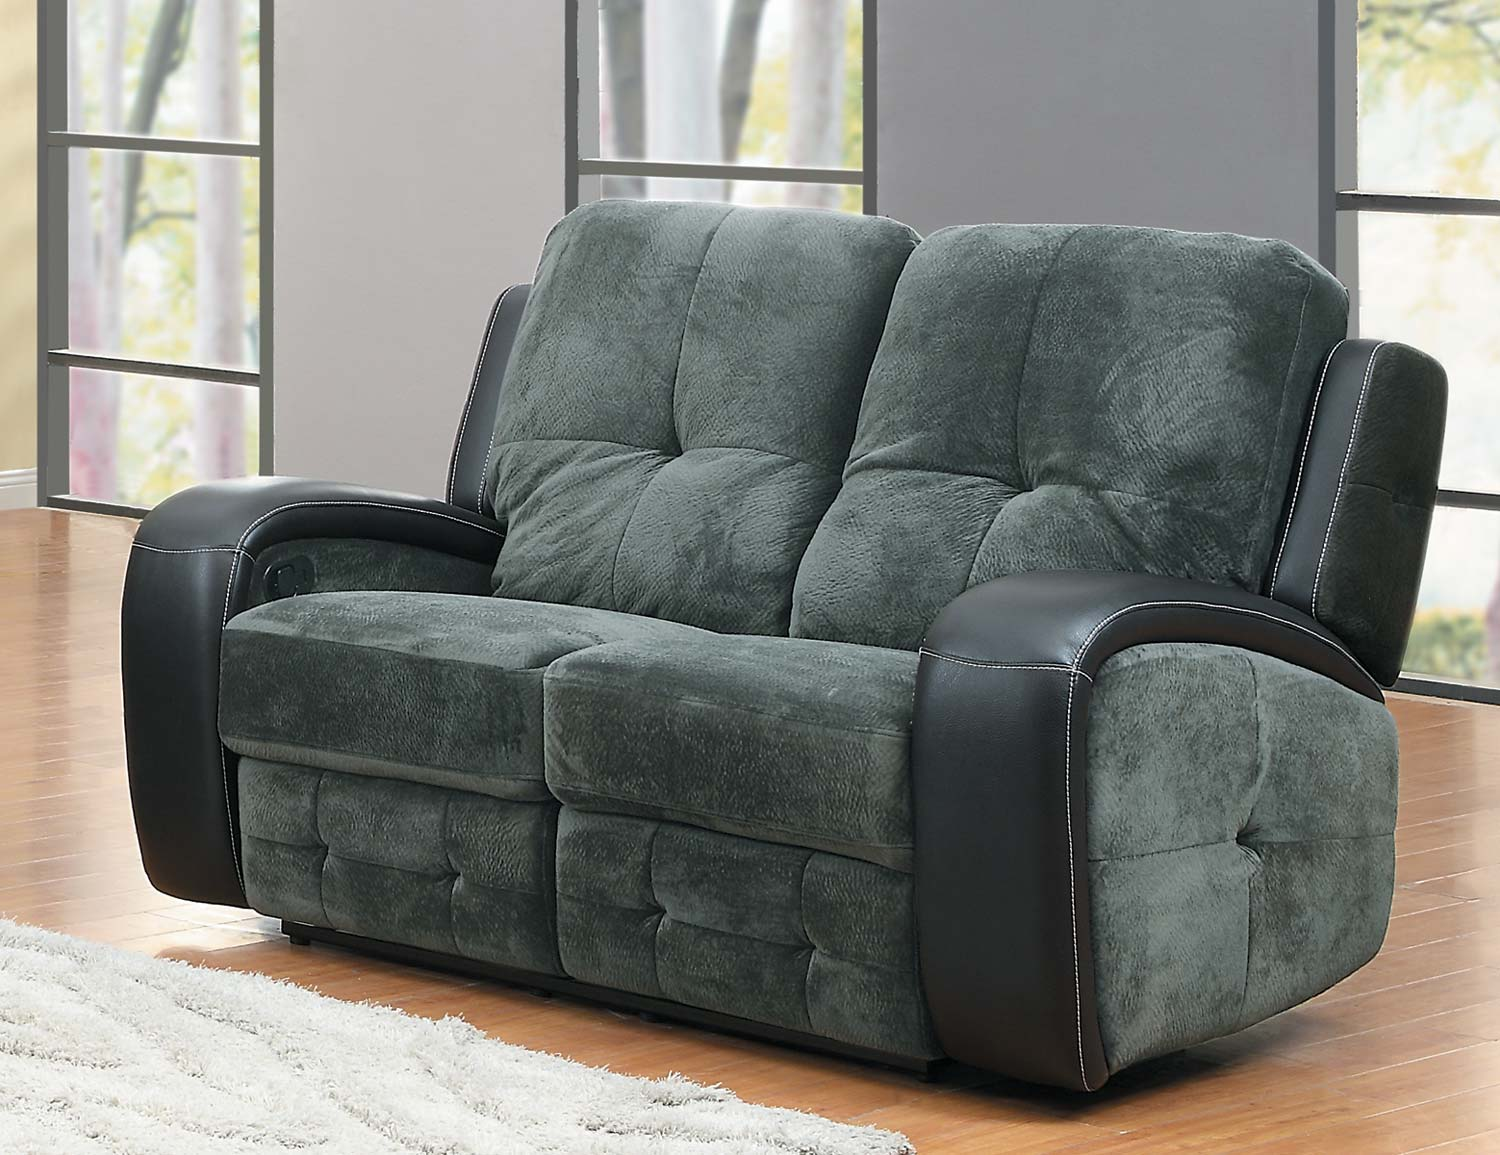 Homelegance Flatbush Reclining Sofa Set Textured Plush Microfiber Black Bi Cast Vinyl Cover